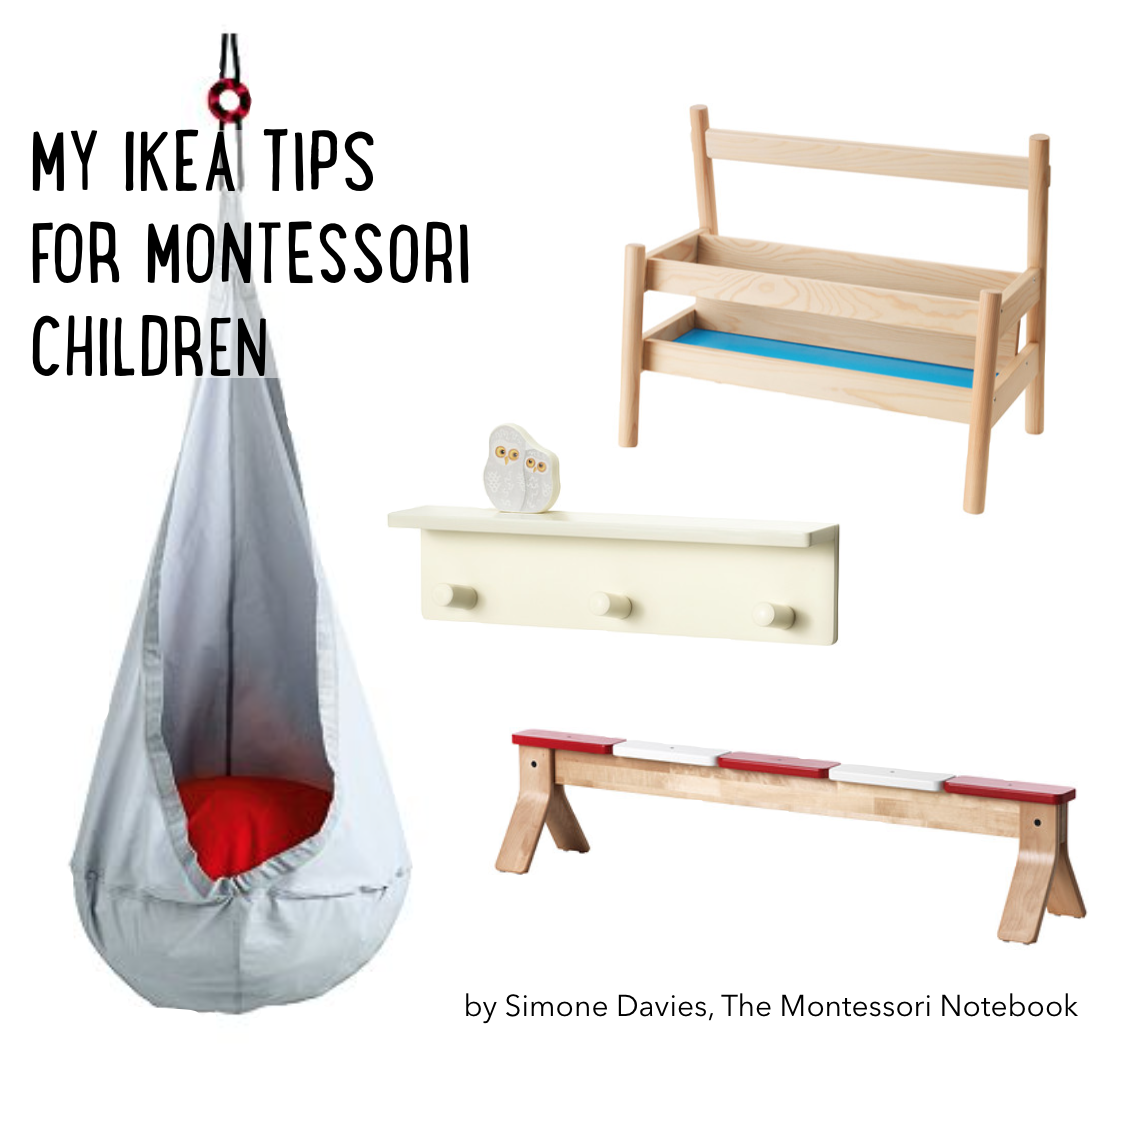 My Top Ikea Picks For Montessori Children The Montessori